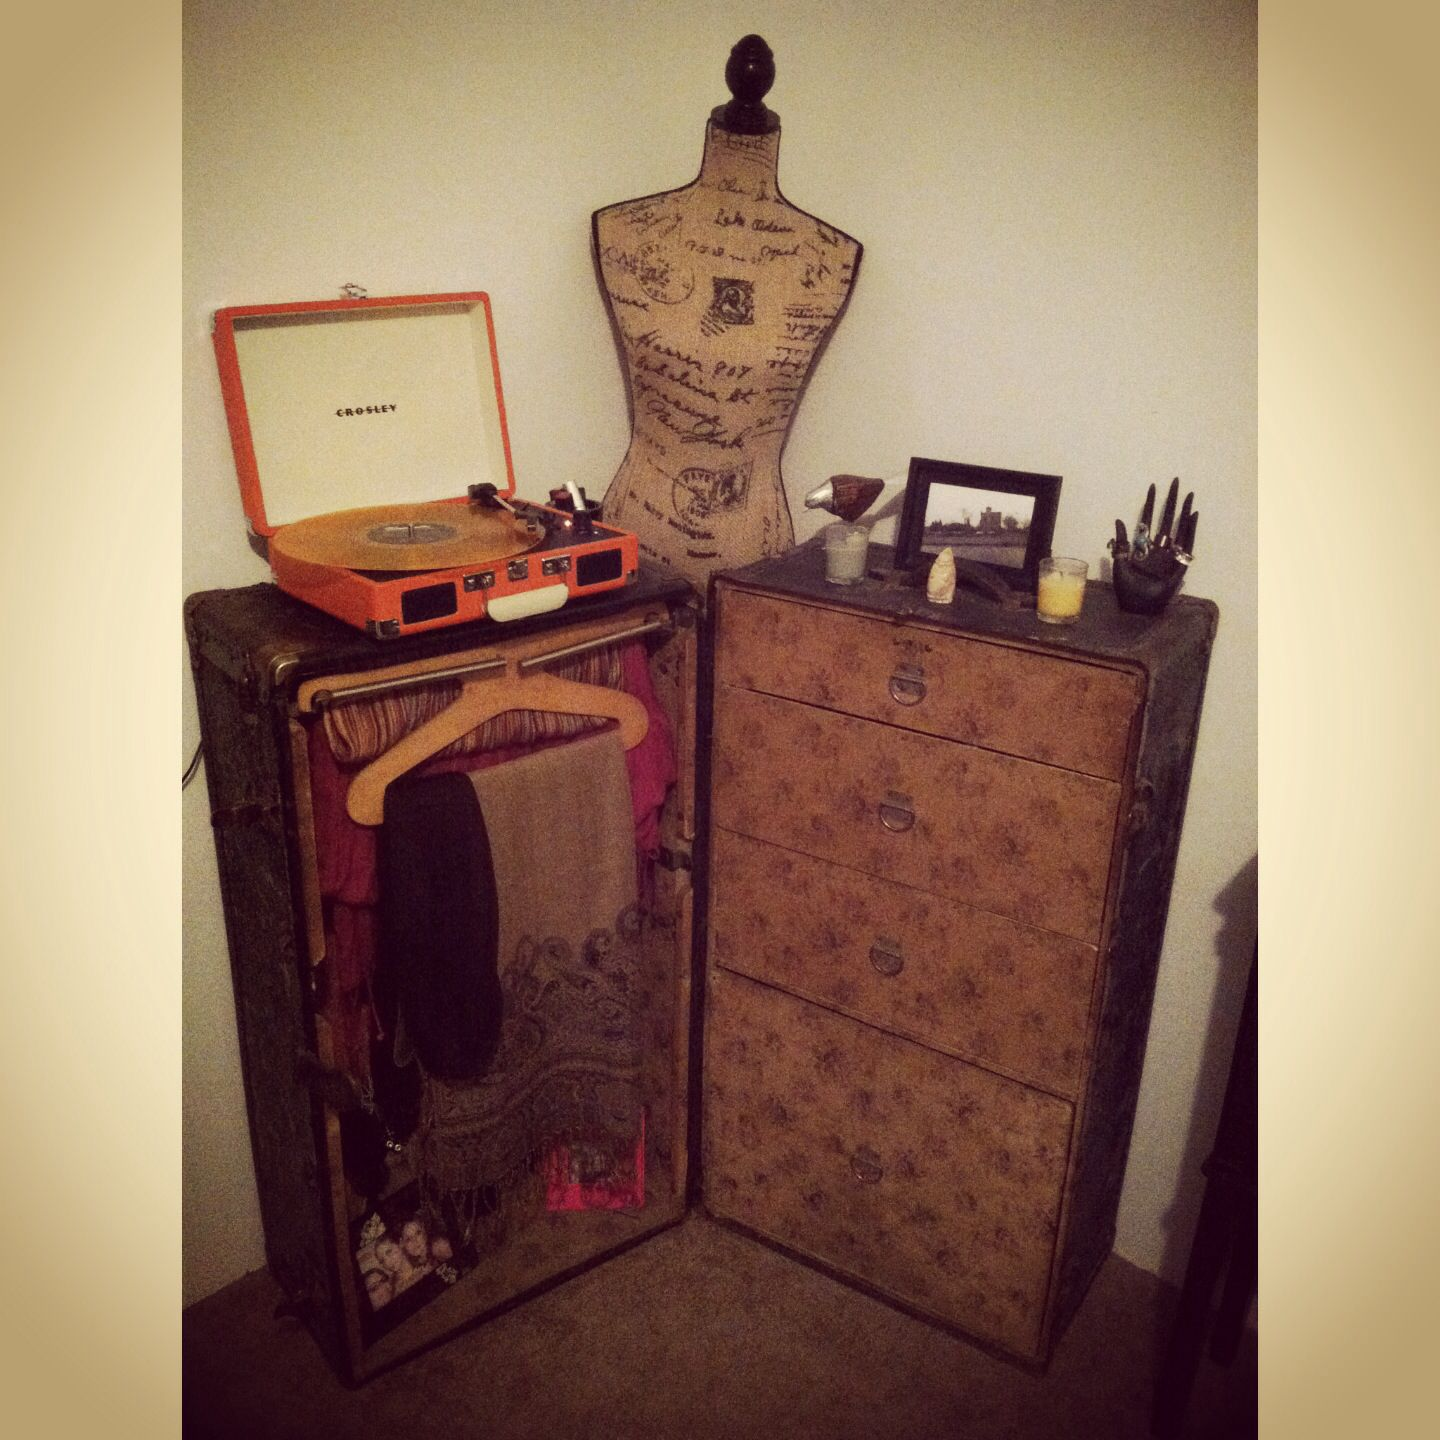 Turntable vintage mannequin steampunk steamer trunk records home ...